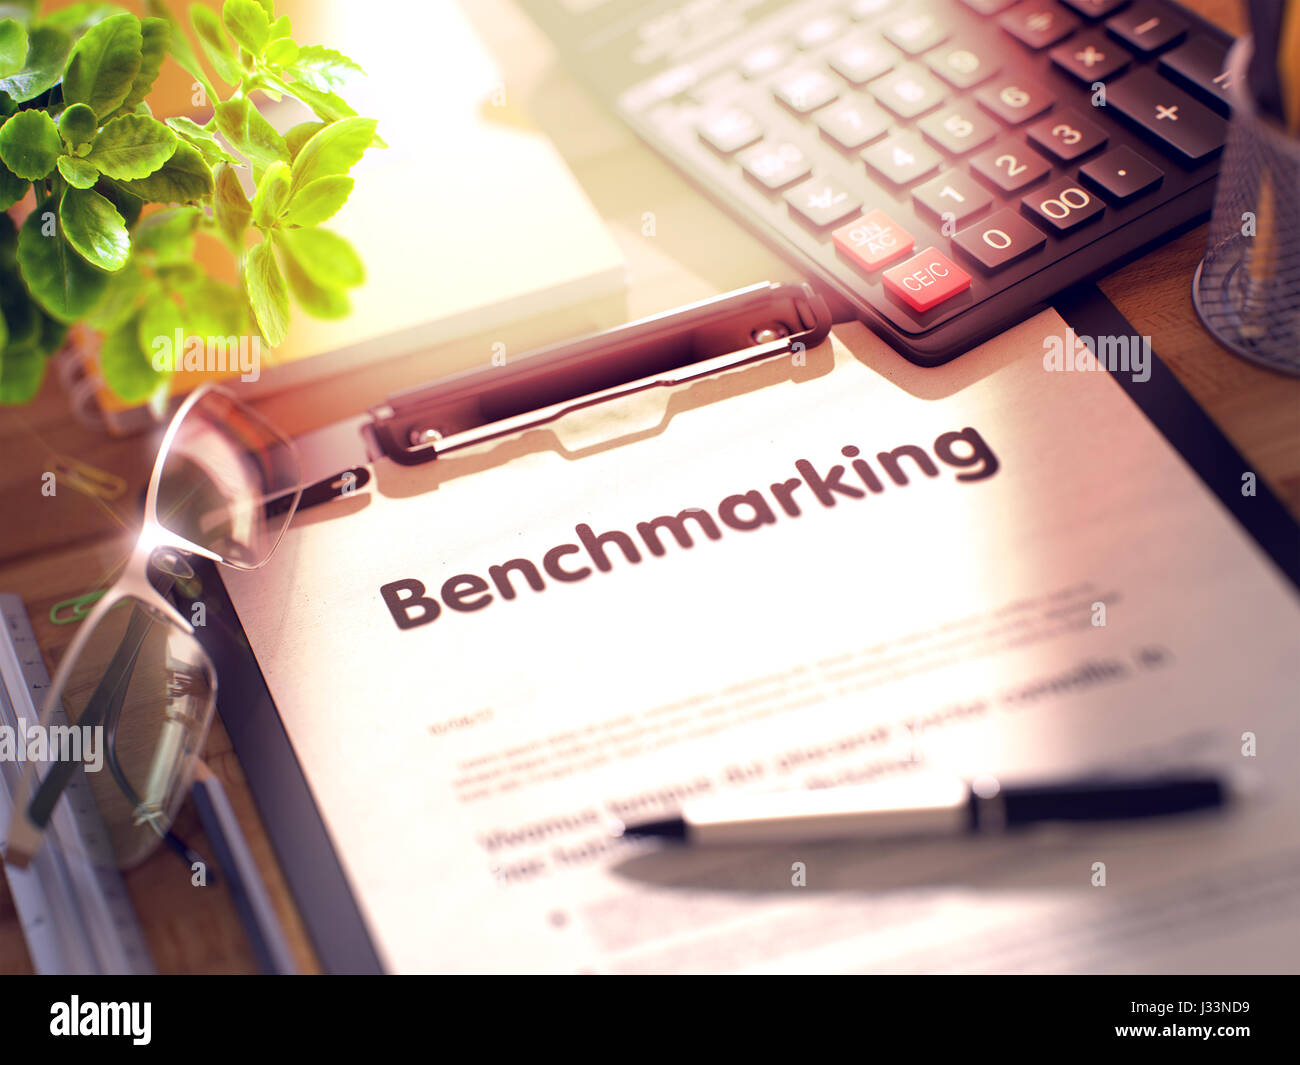 the concept of benchmarking Best practice definition the systematic process of measuring an organization's  performance against recognized leaders for the purpose of determining best.